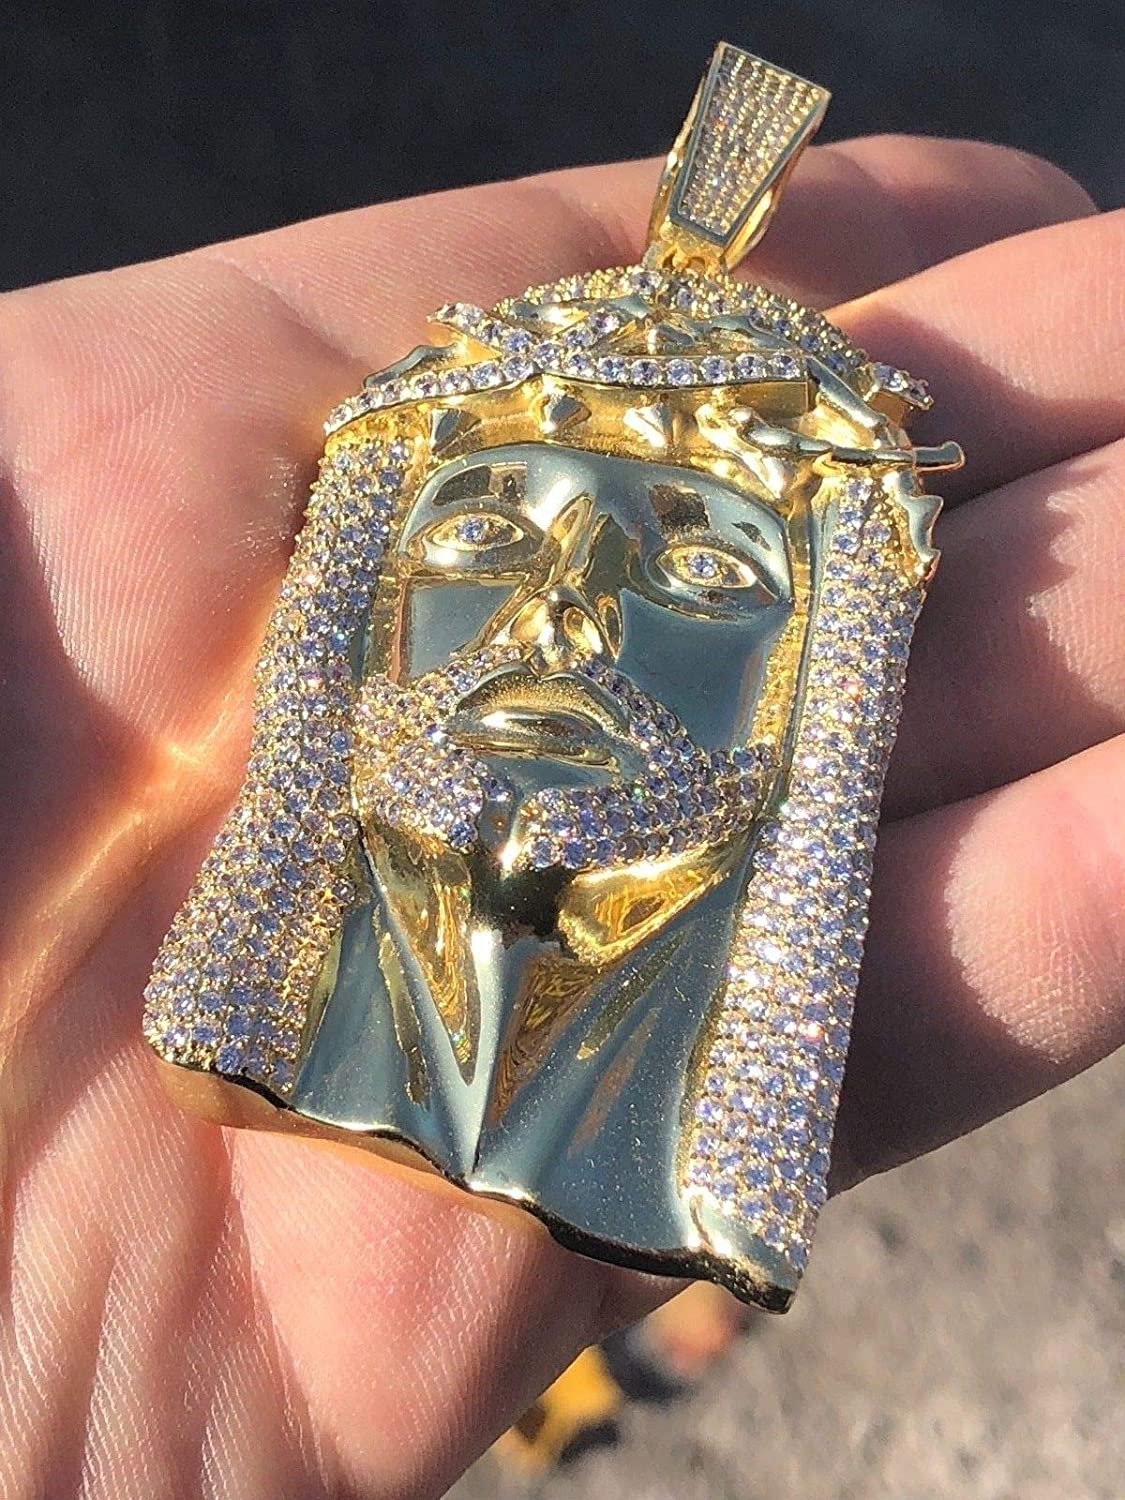 Huge 3 Solid 925 Sterling Silver Iced Out Jesus Piece Pendant Mens Large Hip HOP Style Great for Any Chain